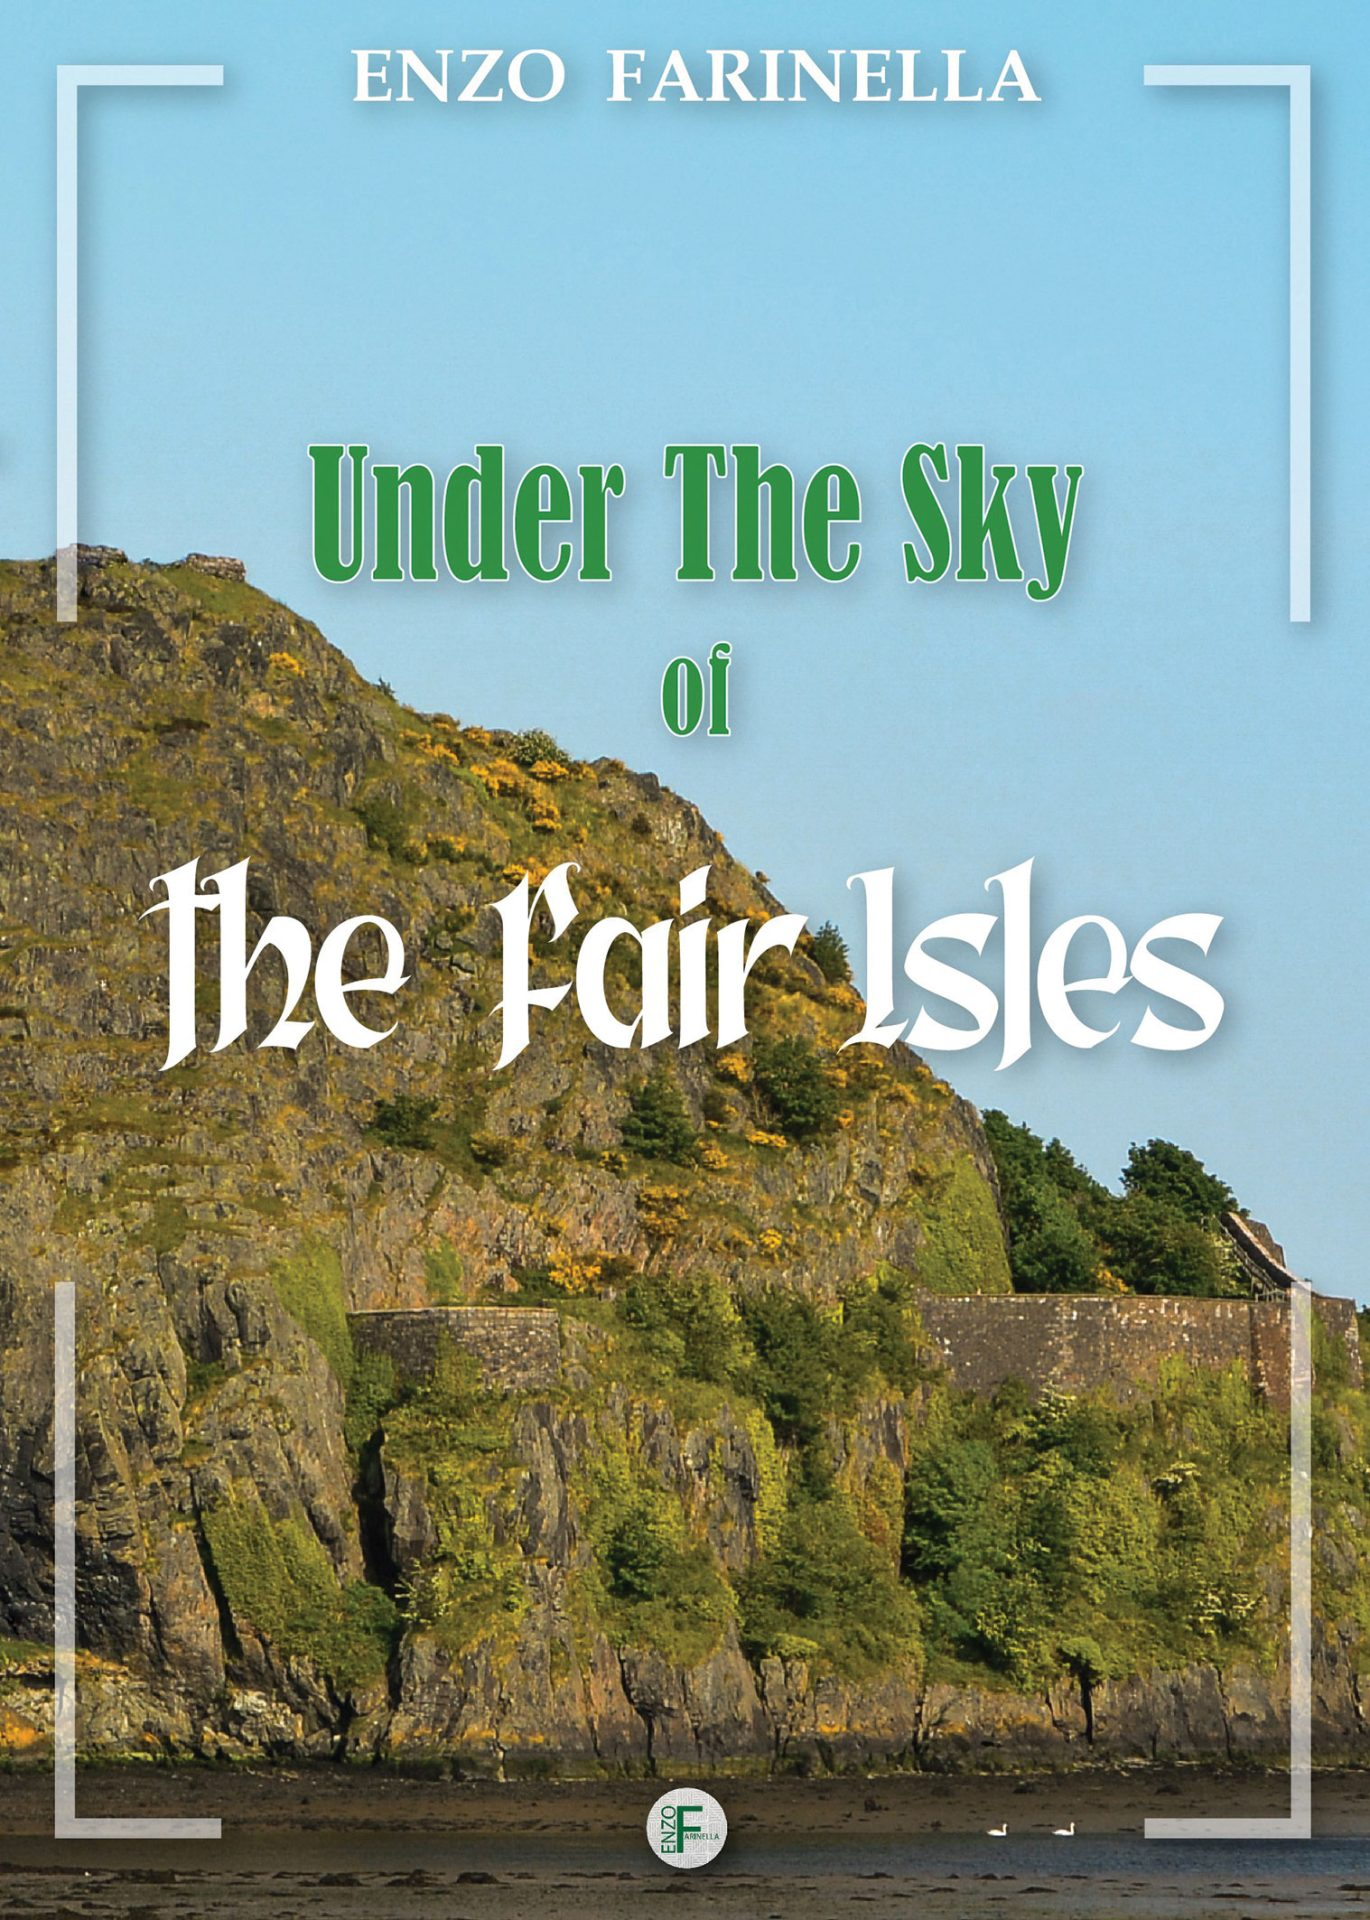 Under the sky of the 'fair' Islands di Enzo Farinella. Un grande saggio tra monachesimo d'Irlanda e cultura